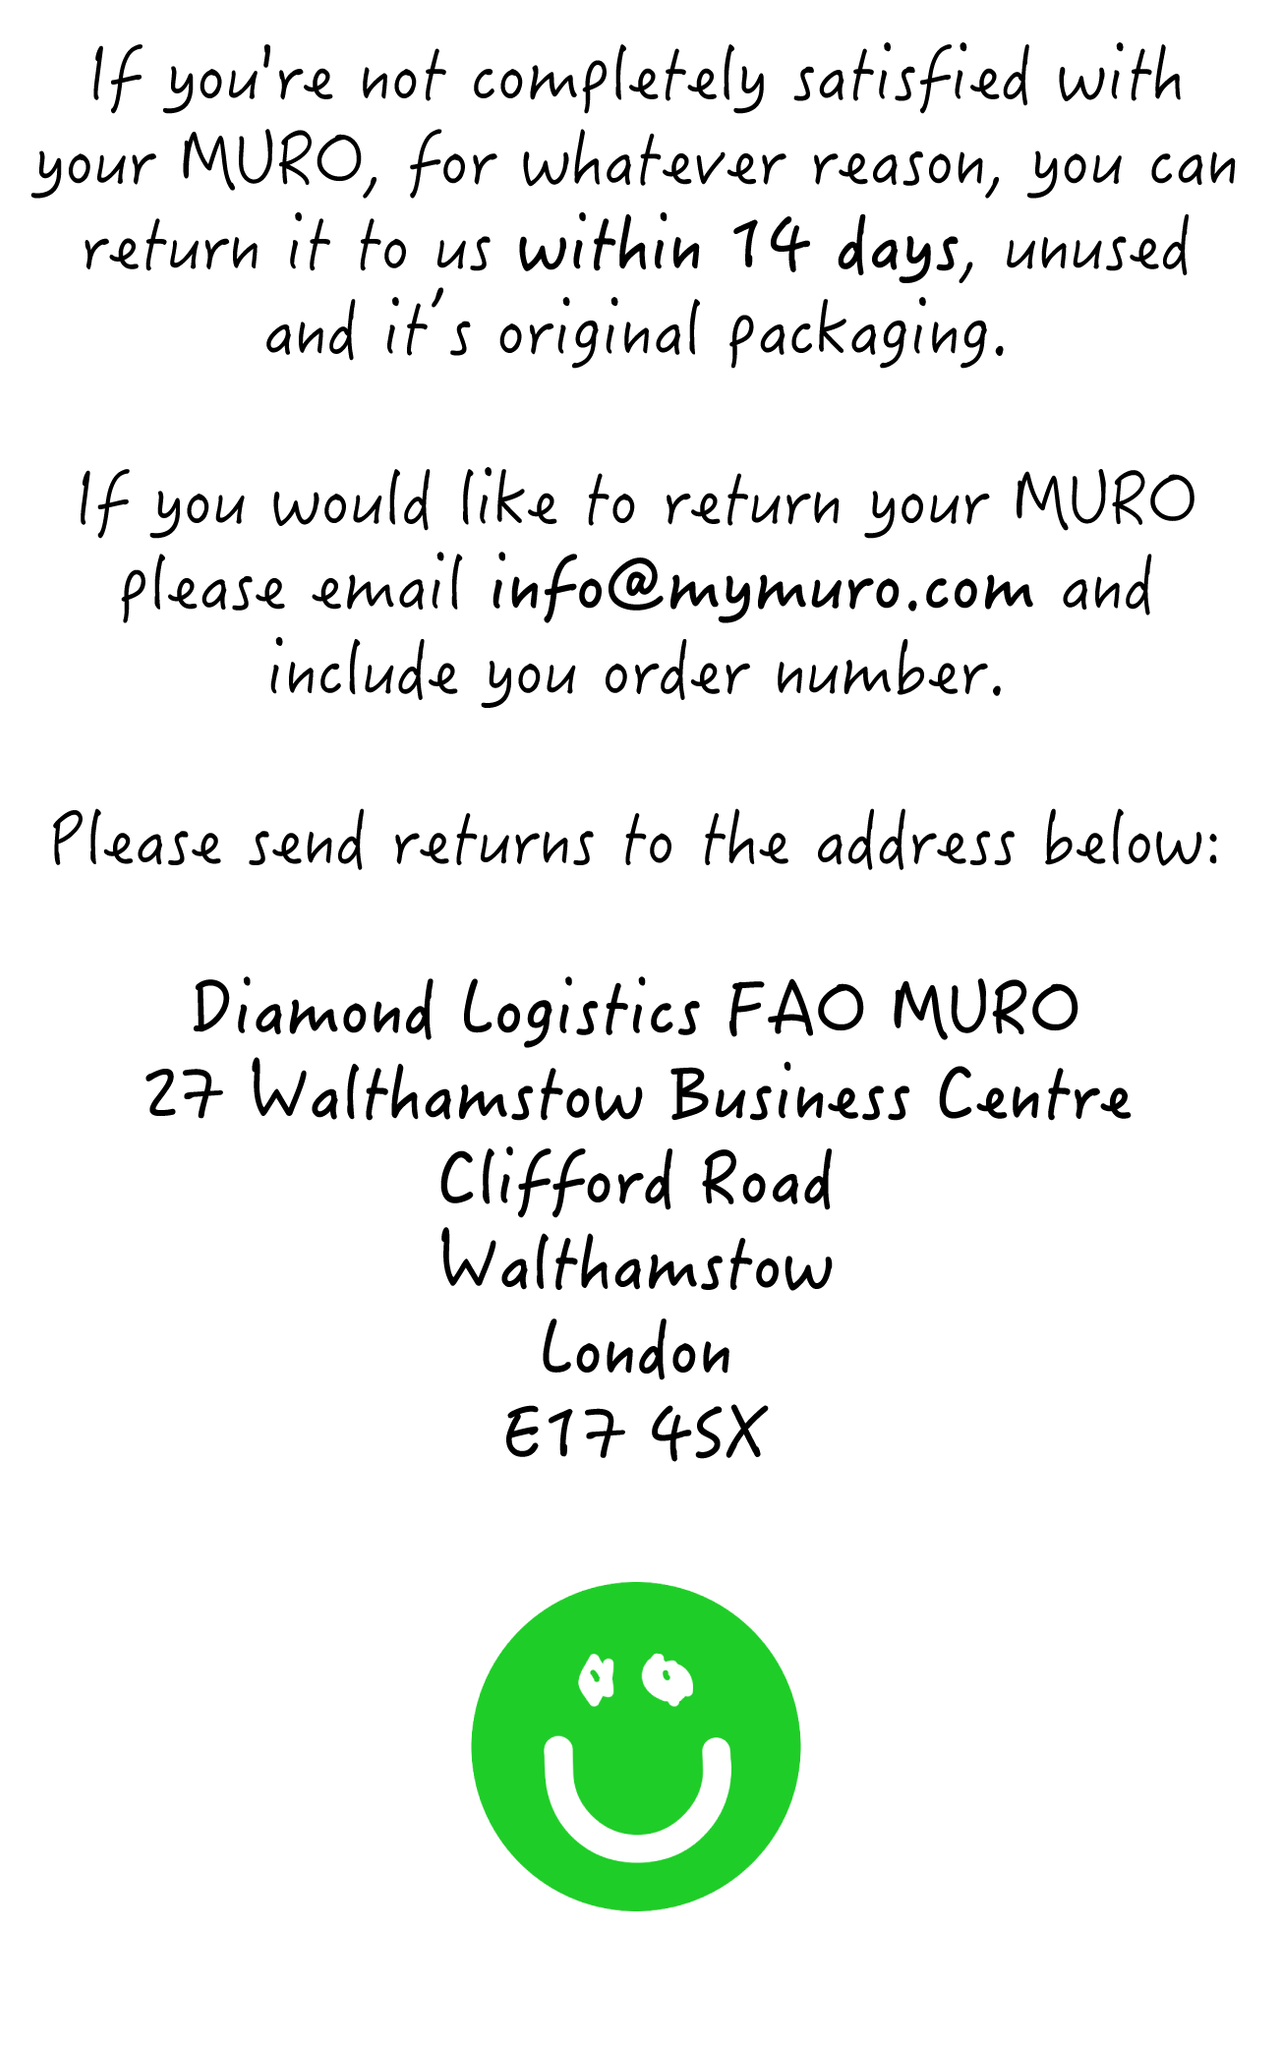 If you're not completely satisfied with your MURO, for whatever reason, you can return it to us within 14 days, unused and it's original packaging. If you would like to return your MURO please email info@mymuro.com and include you order number. Please send returns to the address below: Diamond Logistics FAO MURO 27 Walthamstow Business Centre  Clifford Road Walthamstow  London E17 4SX